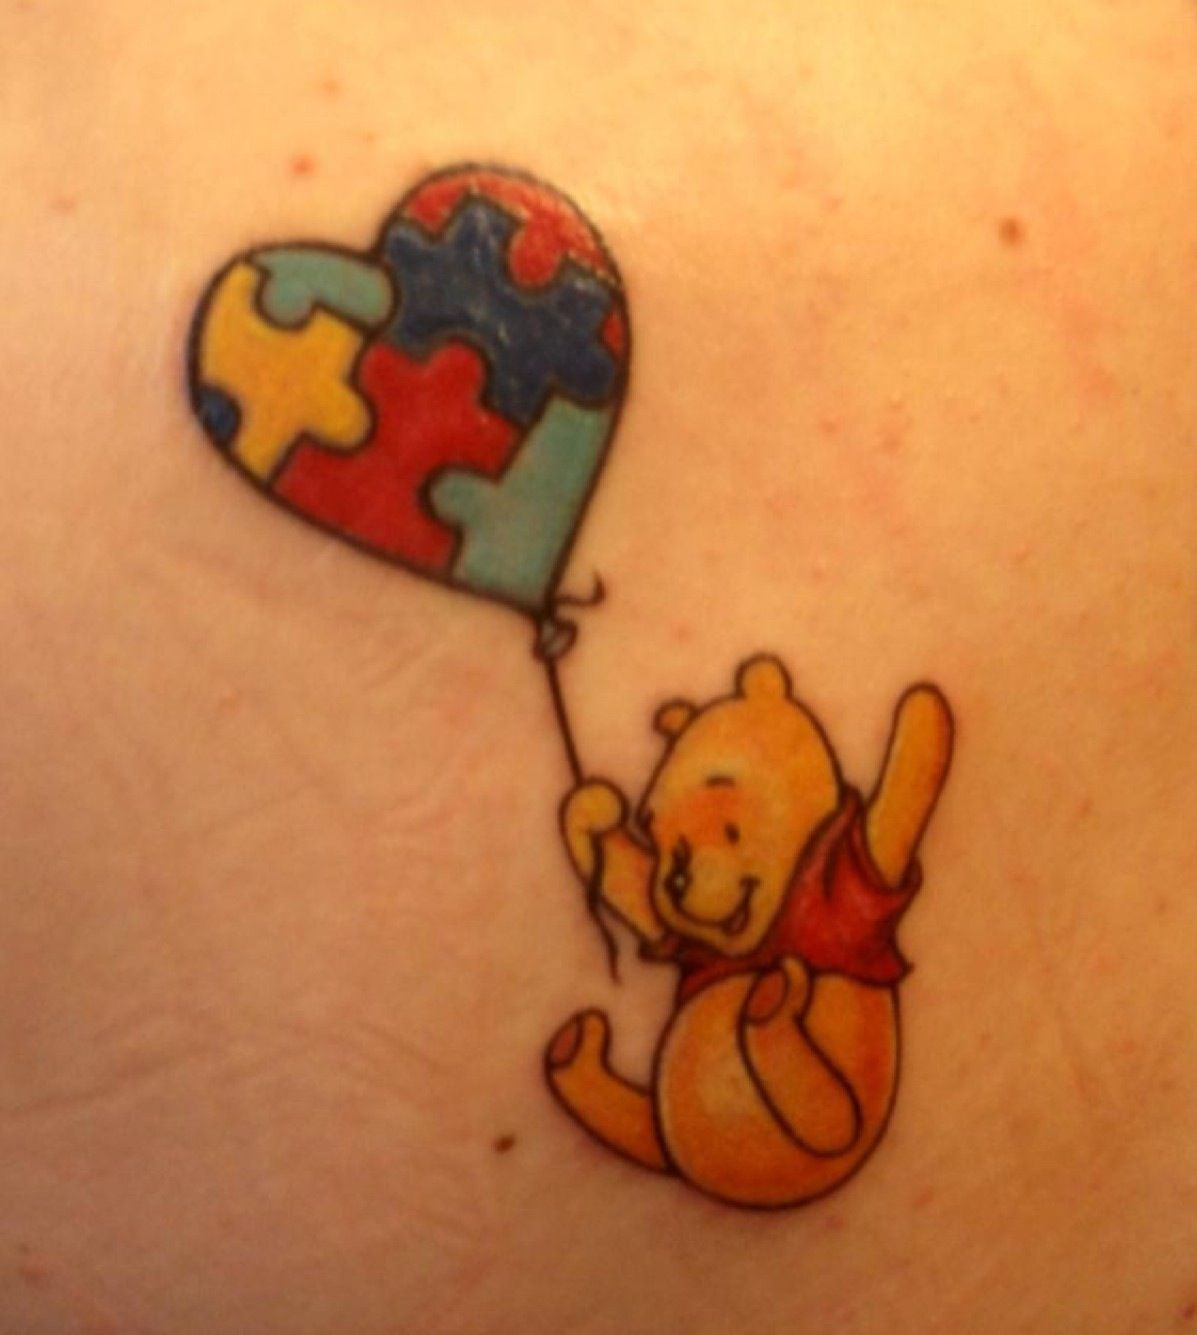 Autism speaks whinnie the pooh tattoo, that I want behind my ear